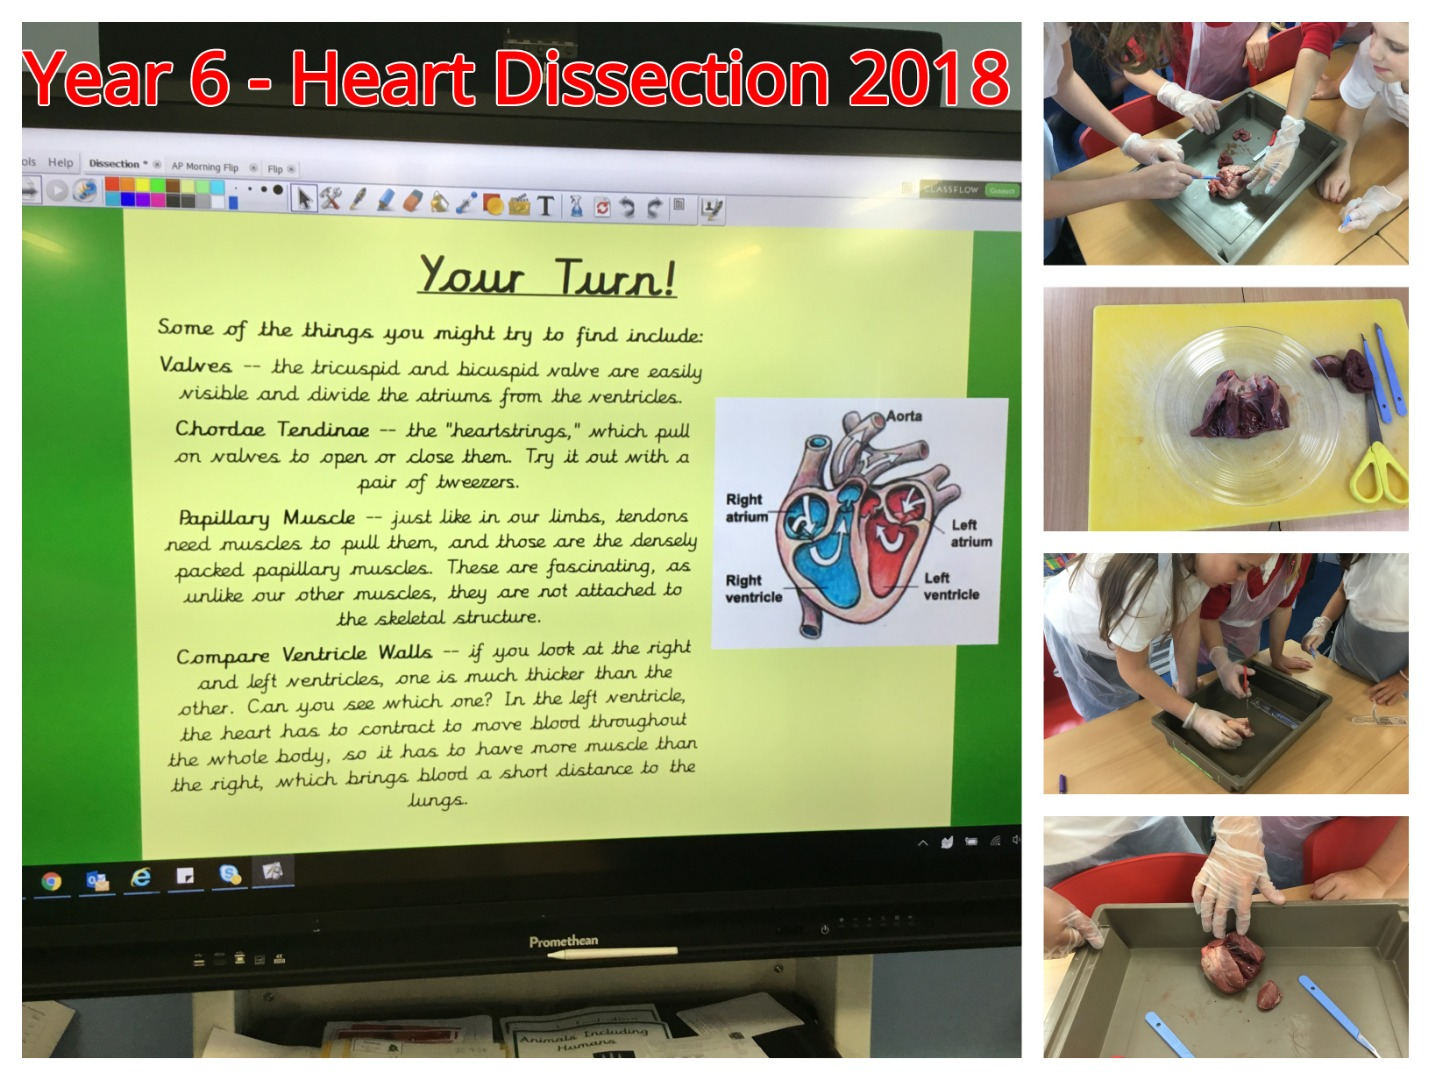 Heart Dissection Collage.jpg